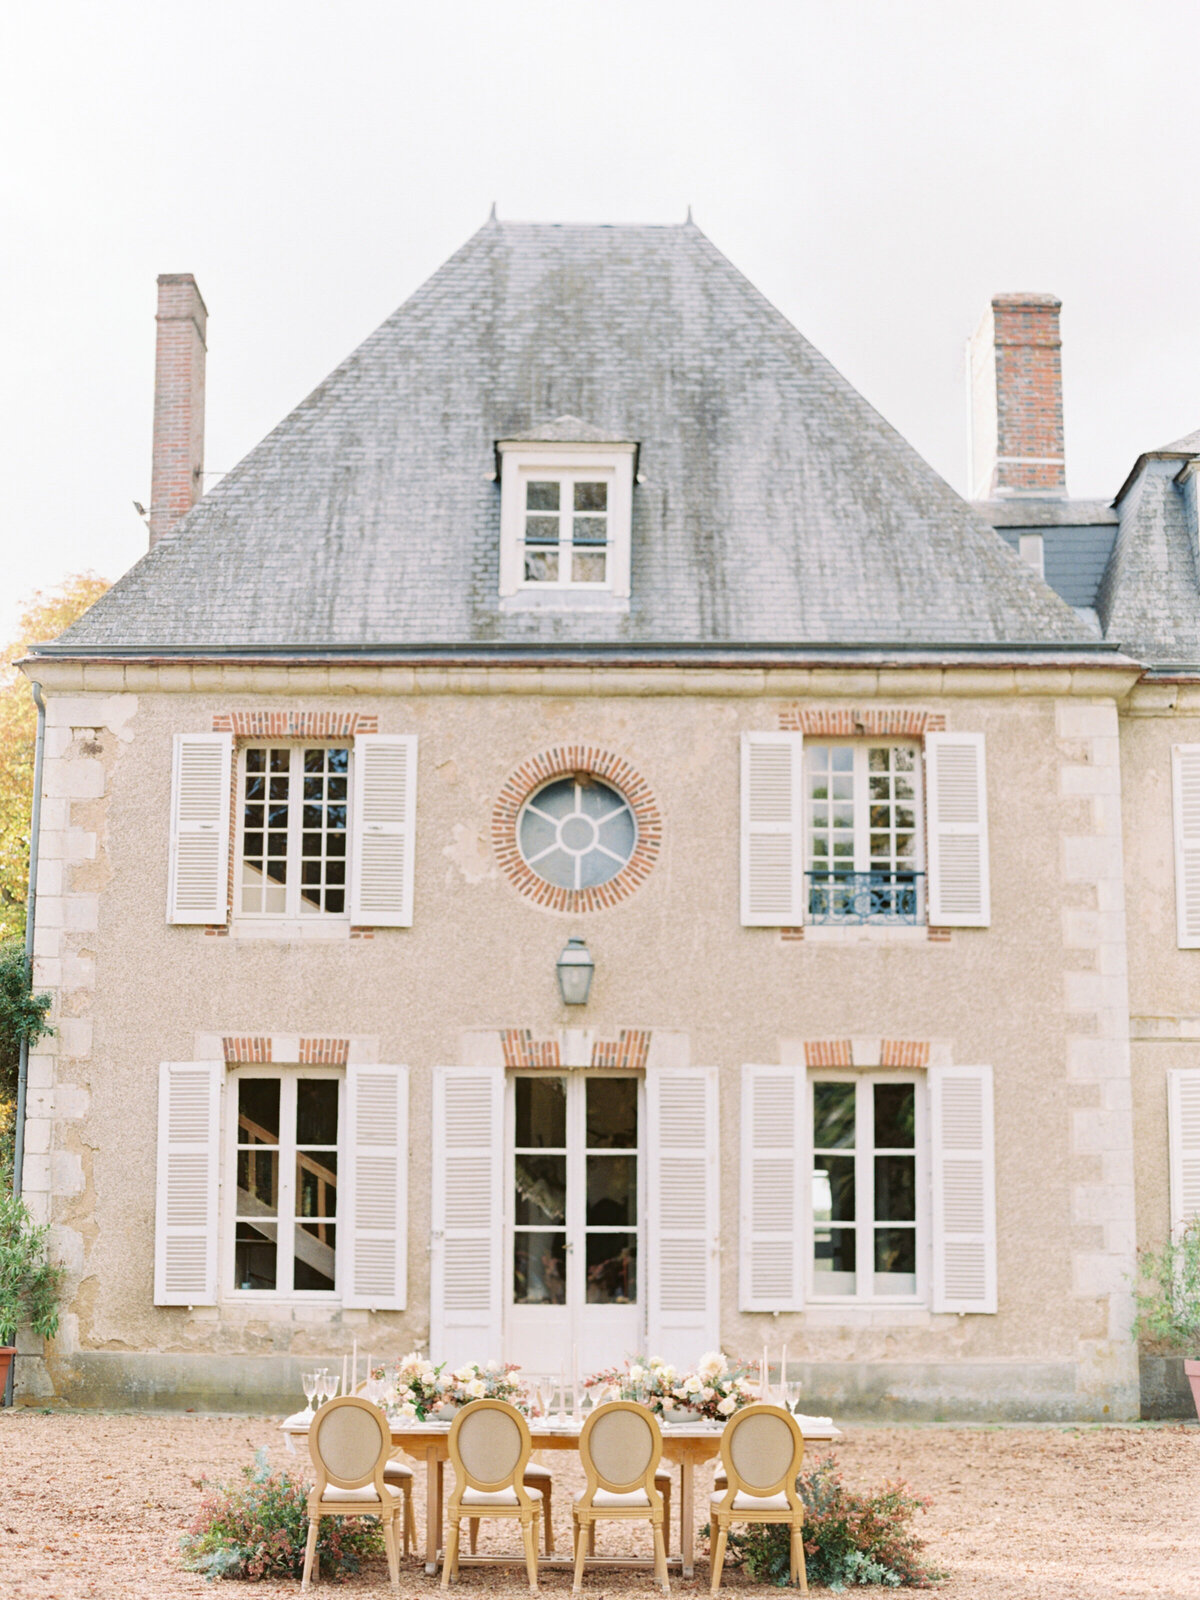 chateau-bouthonvilliers-wedding-paris-wedding-photographer-mackenzie-reiter-photography-68